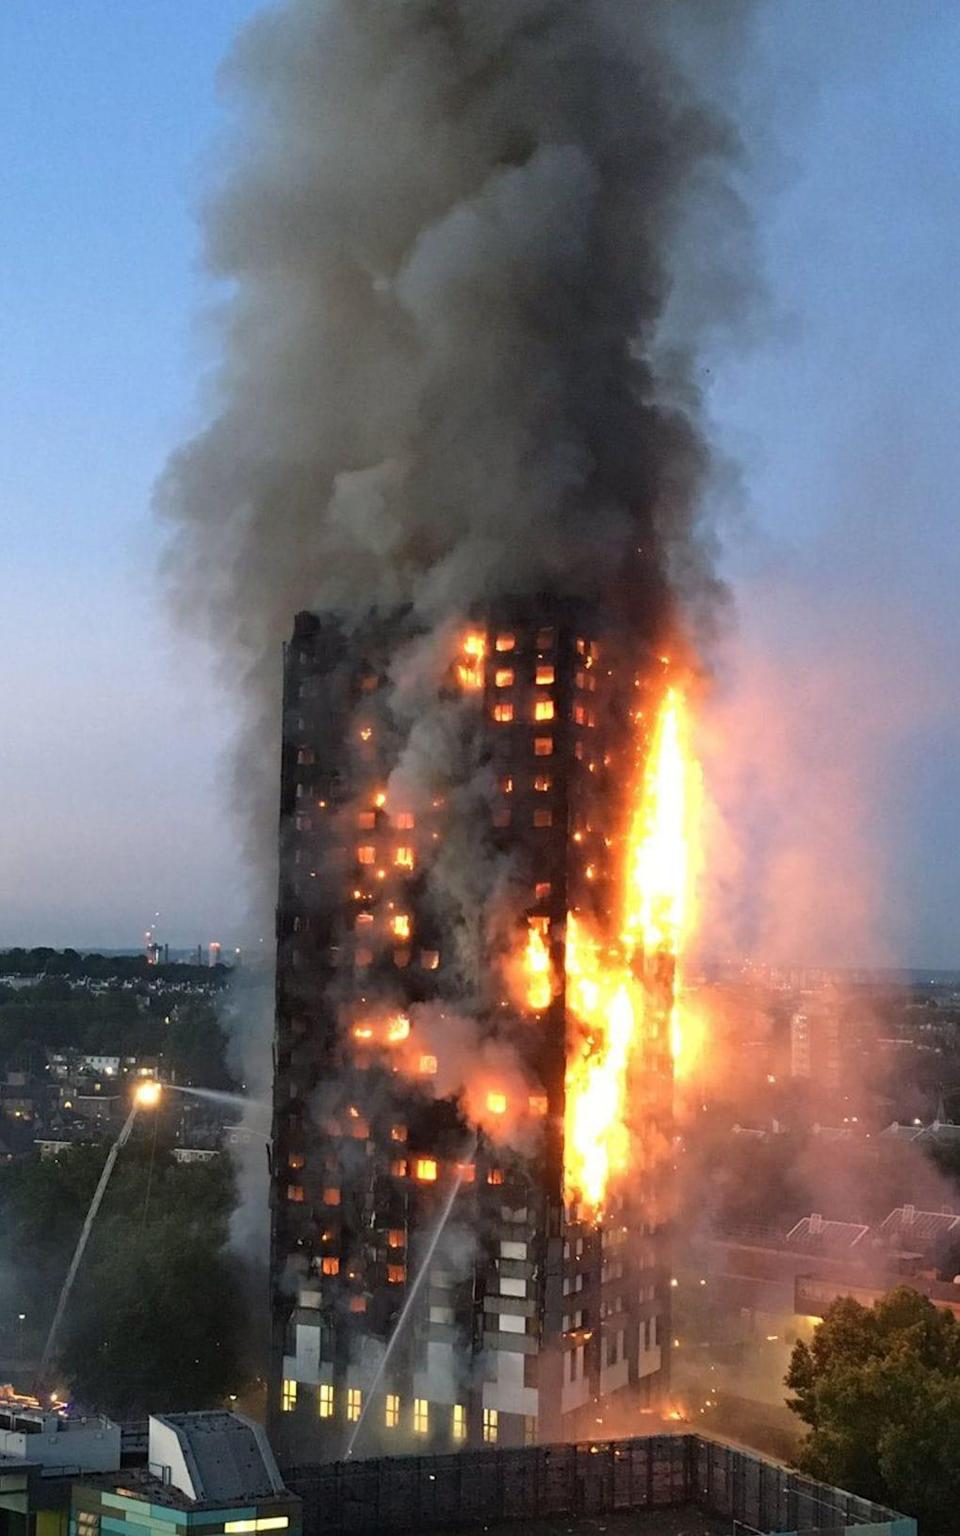 Thick smoke billows from Grenfell Tower as the fire rages in the early hours - Credit: NATALIE OXFORD/AFP